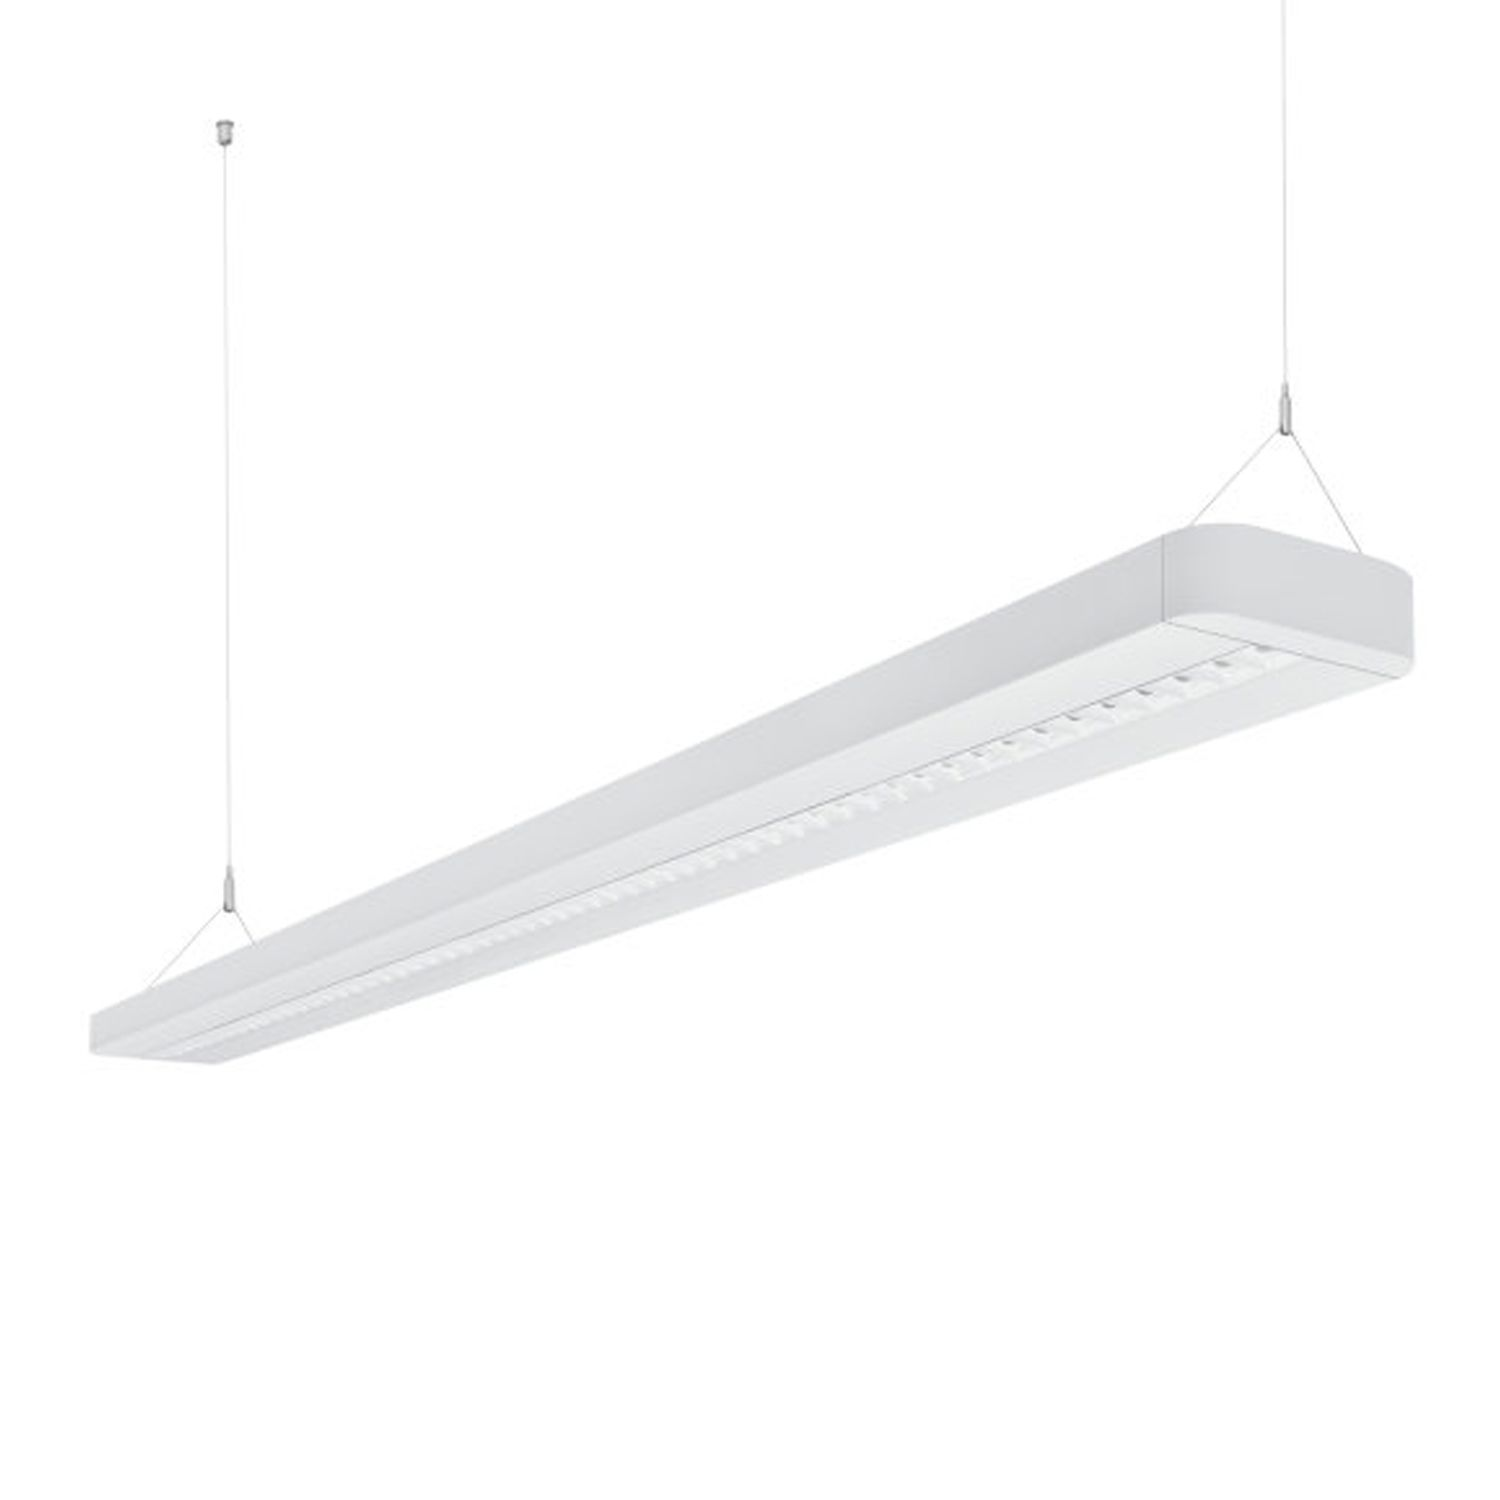 Ledvance LINEAR IndiviLED DIRECT 48W 150cm 4000K  | Dali Dimmable - Warm White